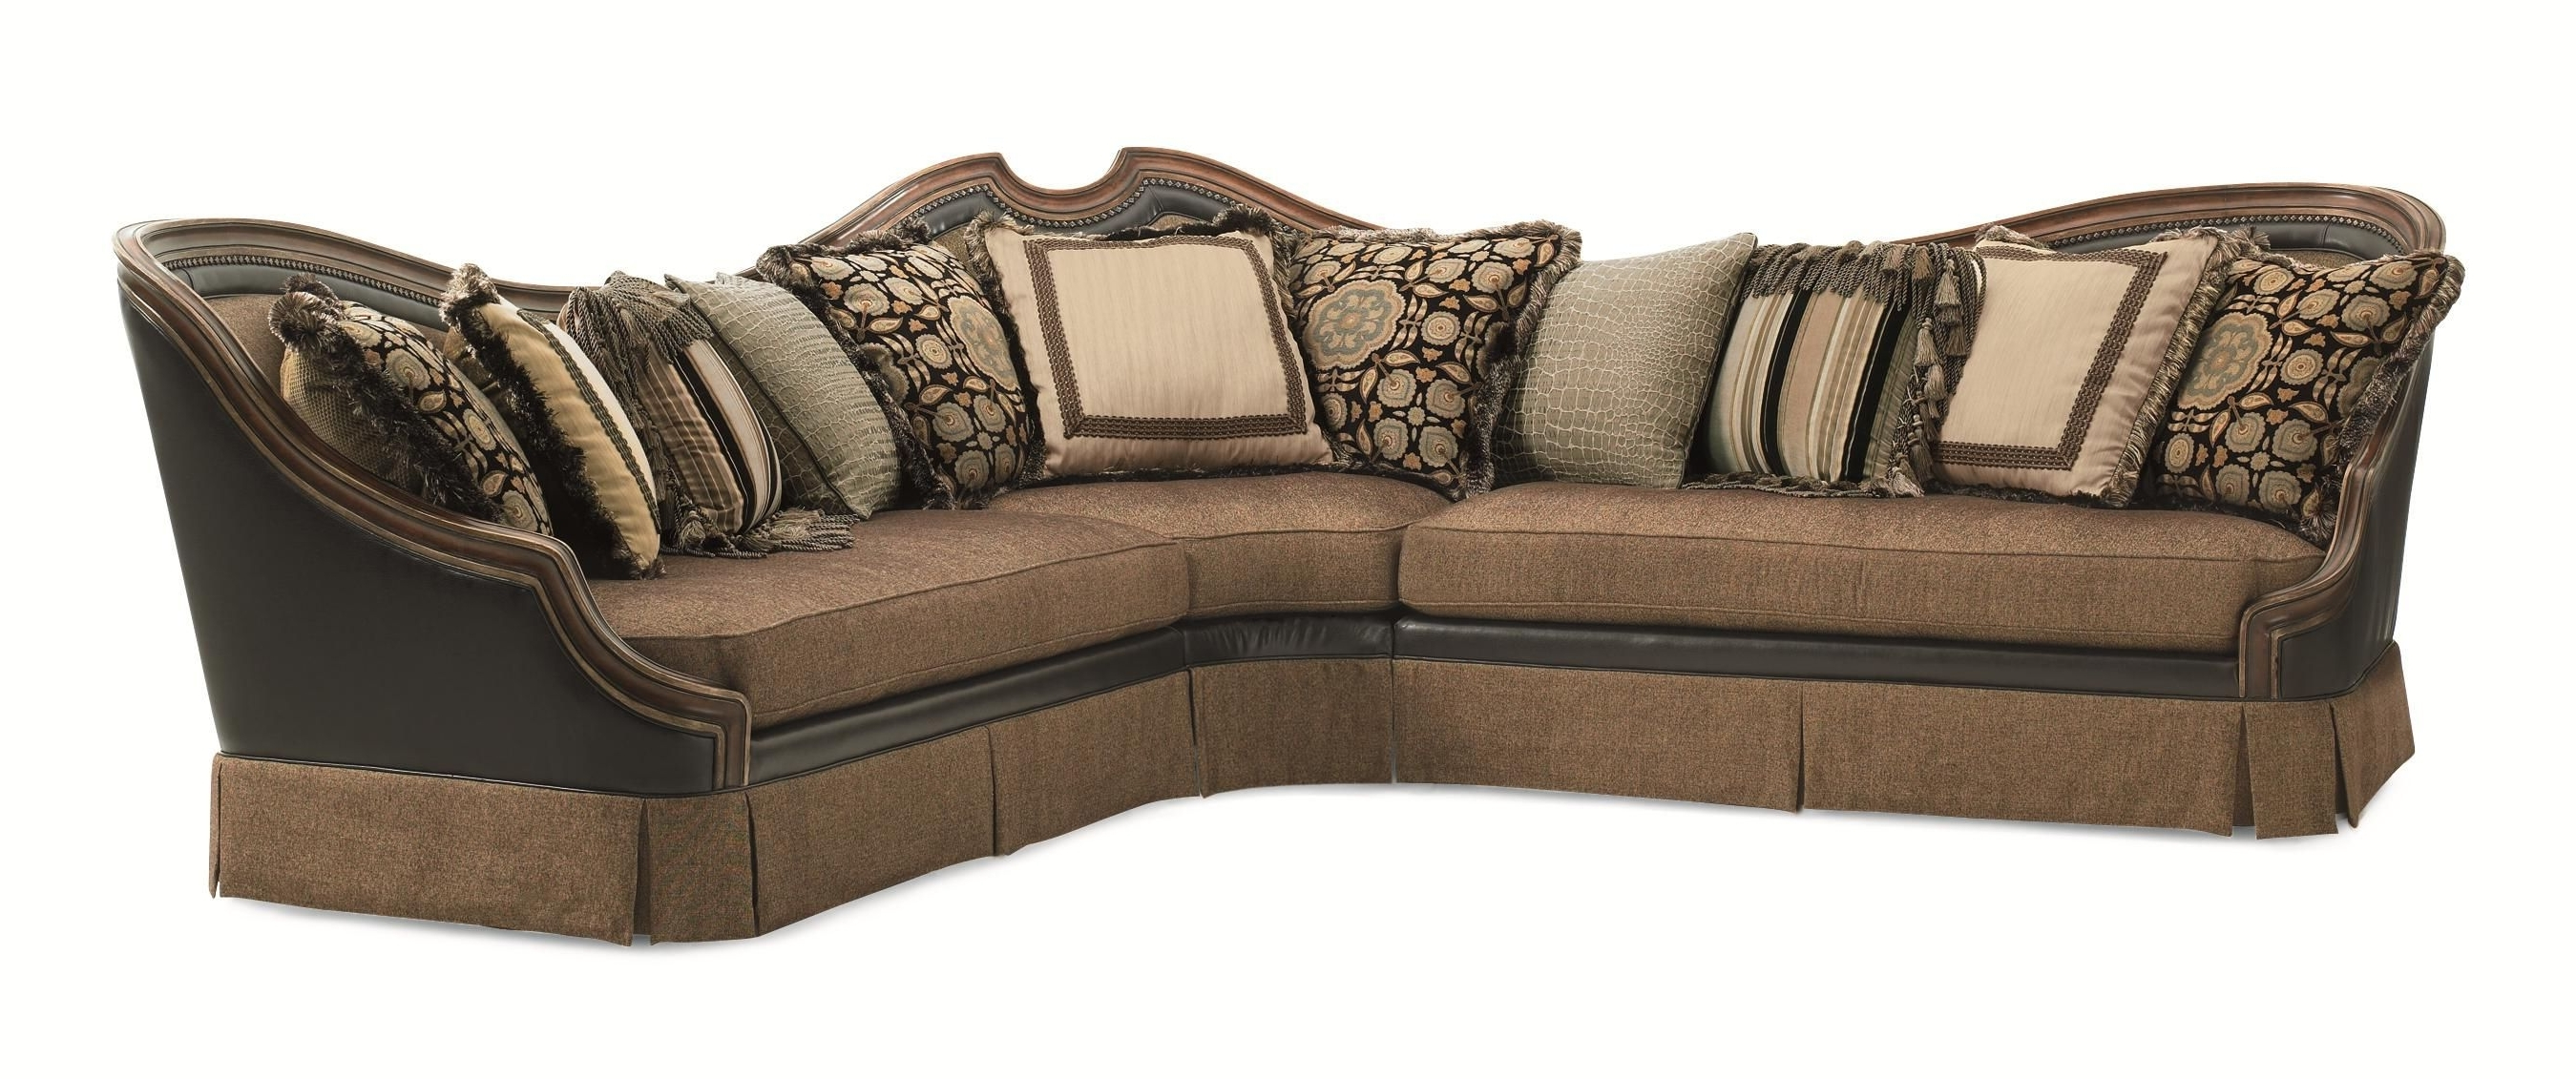 Pinterest In 2019 Nebraska Furniture Mart Sectional Sofas (View 15 of 20)